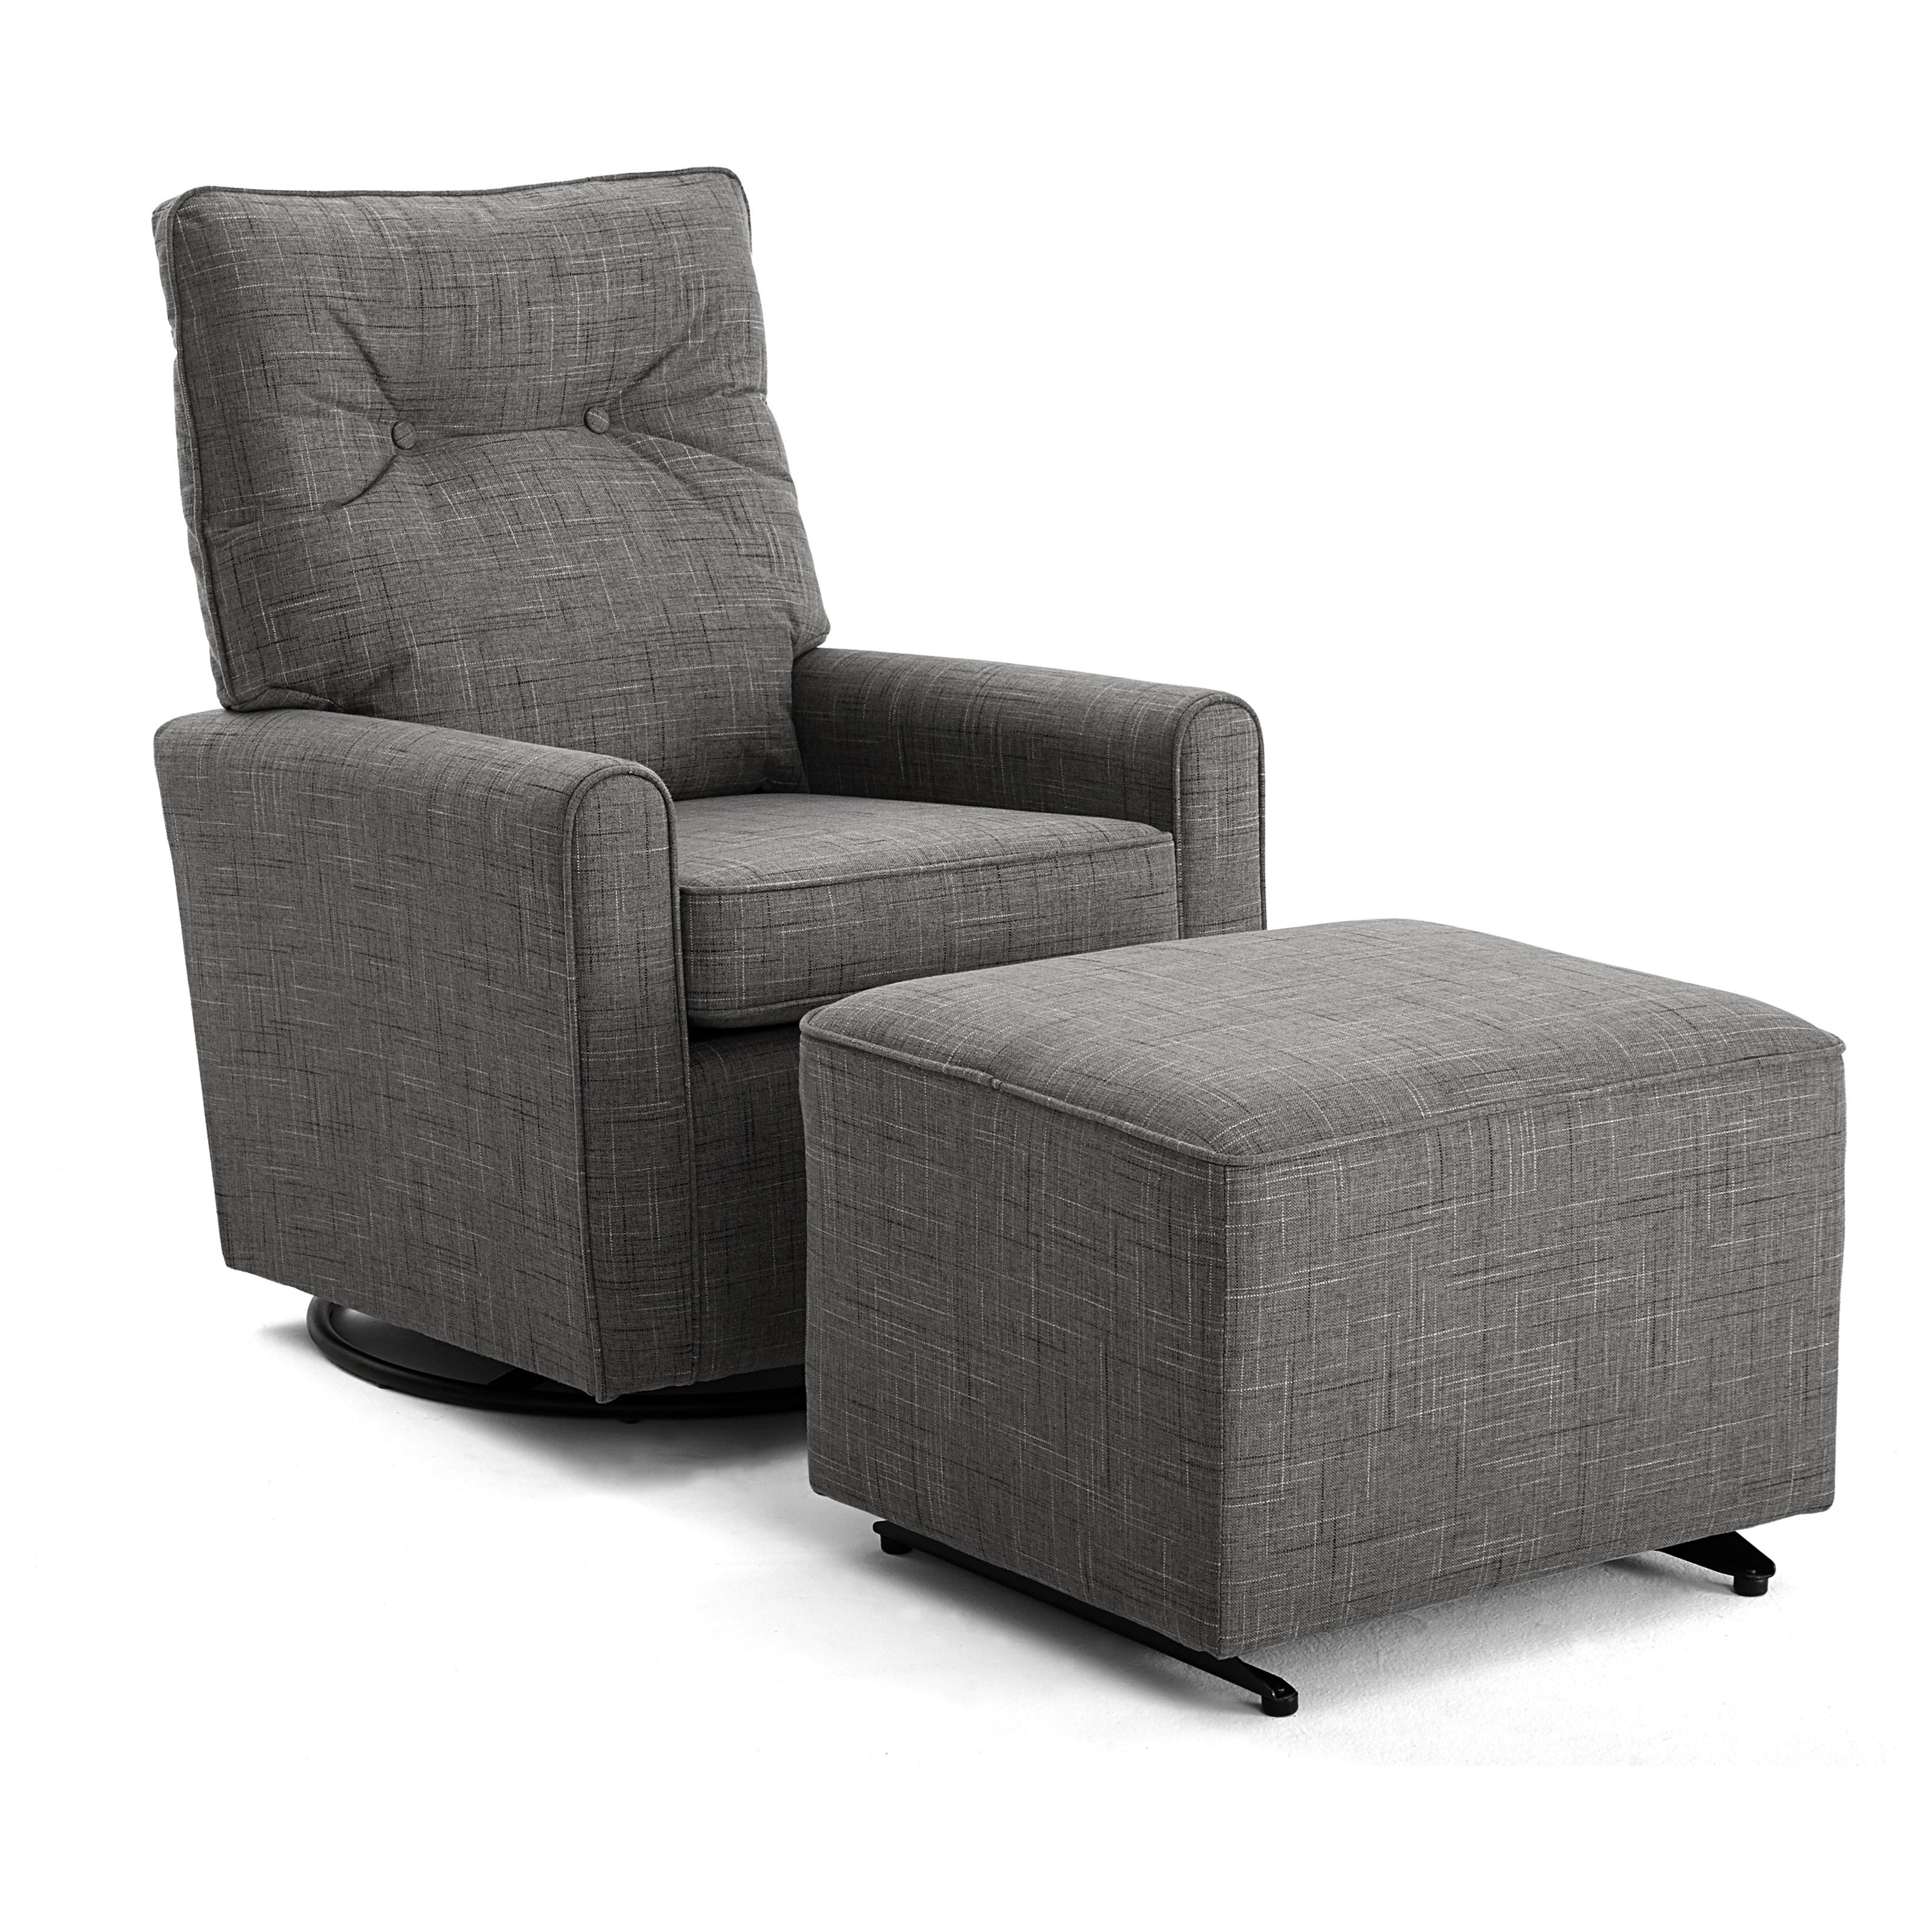 Best Xpress - Phylicia Swivel Glider Chair & Ottoman Set by Best Home Furnishings at Baer's Furniture